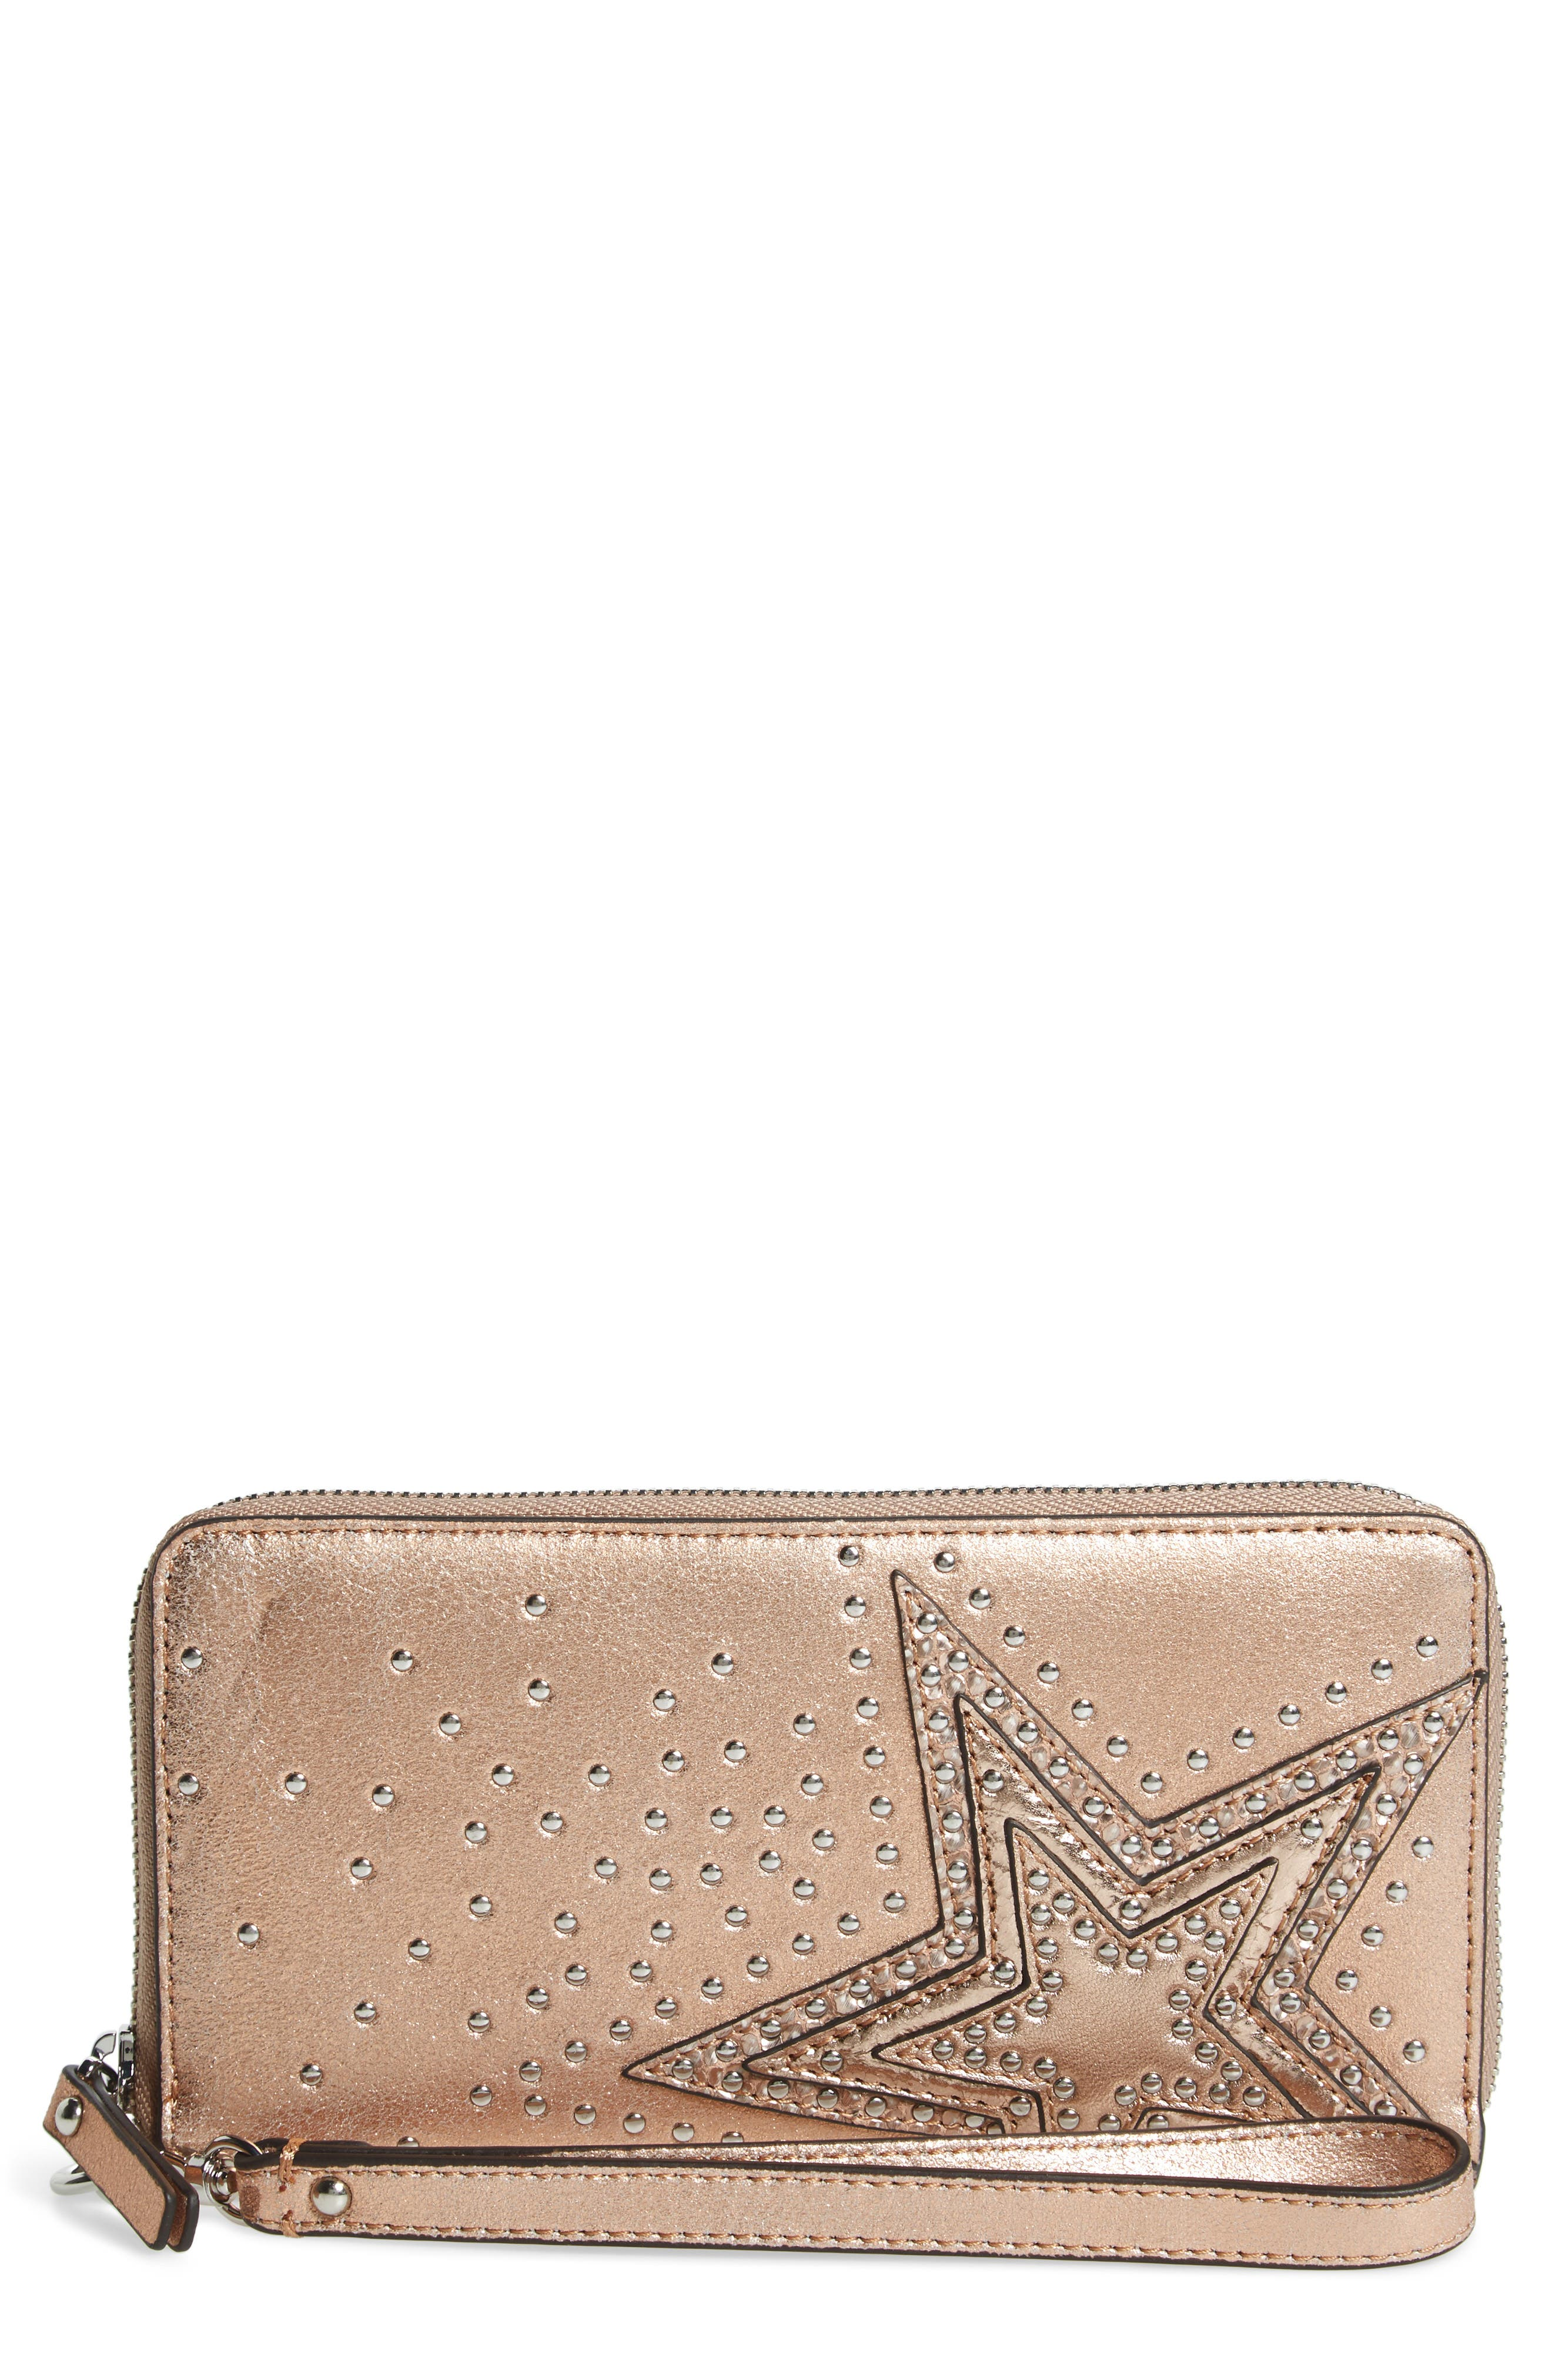 Taz Leather Zip Around Wallet,                             Main thumbnail 1, color,                             ROSE GOLD